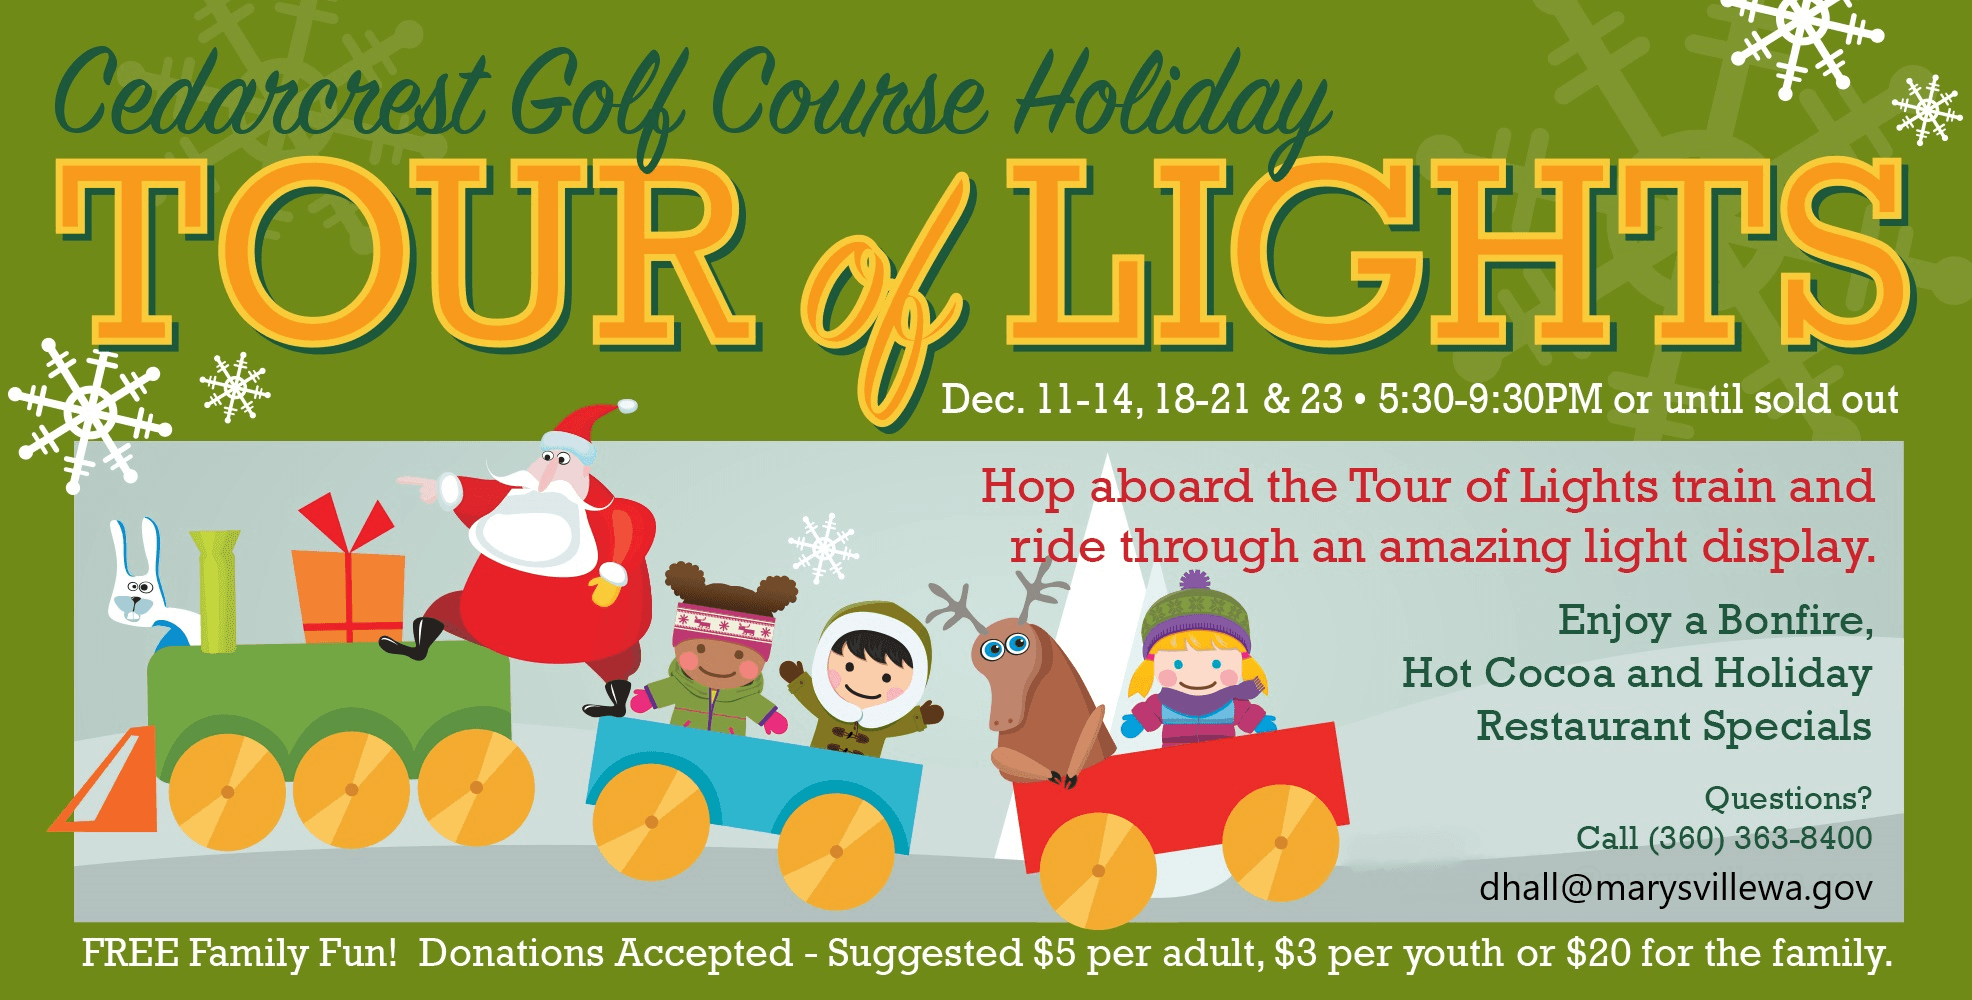 Cedarcrest Tour of Lights Dec. 11-14, 18-21 & 23, 5:30-9:30 pm